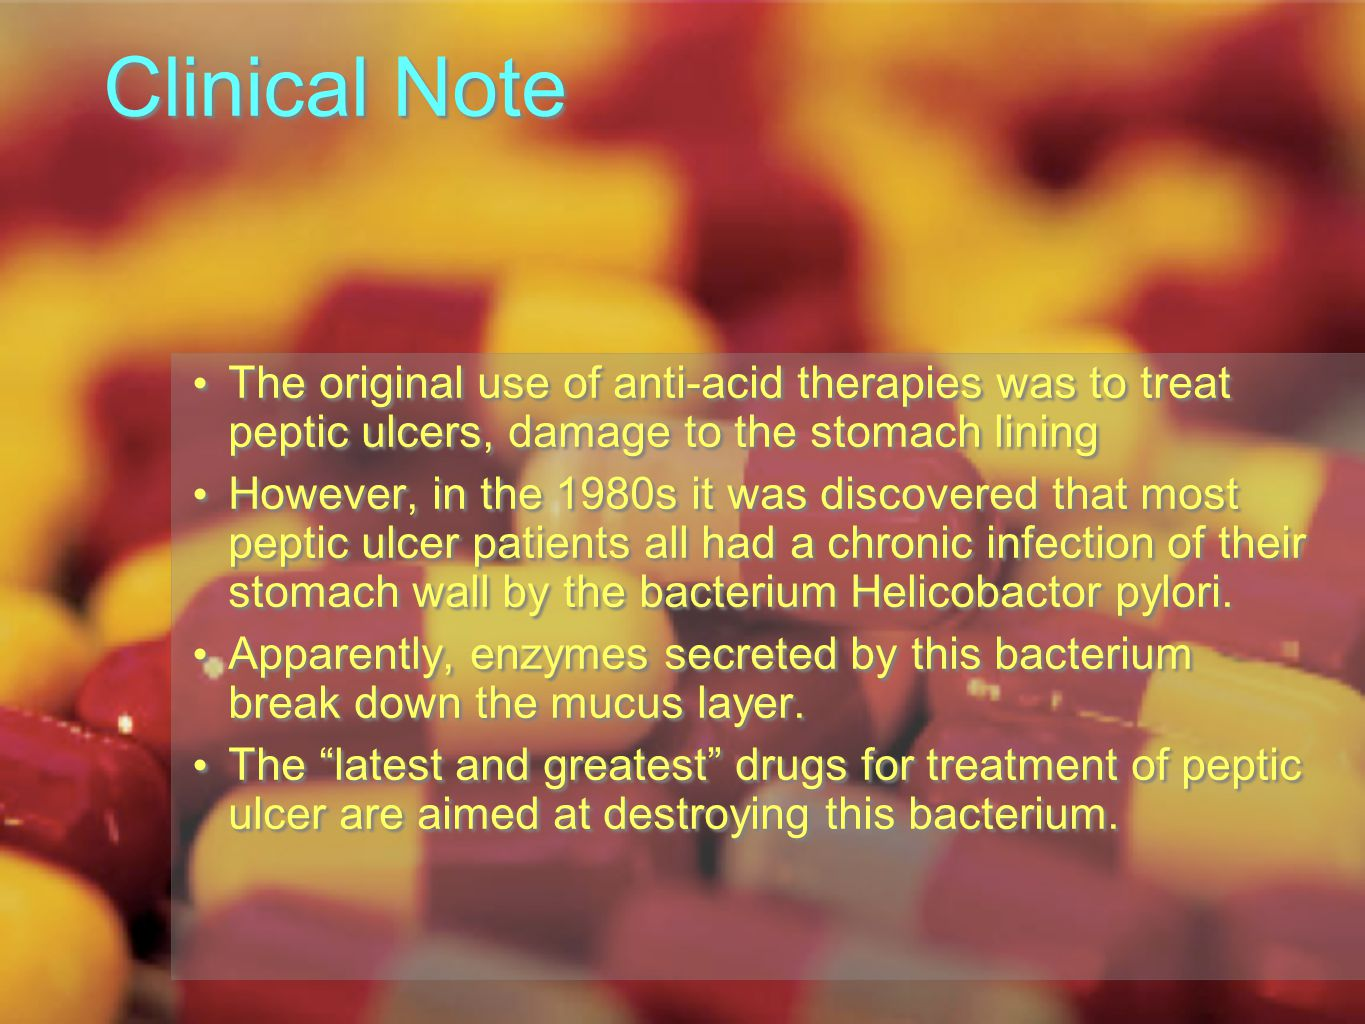 Clinical Note The original use of anti-acid therapies was to treat peptic ulcers, damage to the stomach lining However, in the 1980s it was discovered